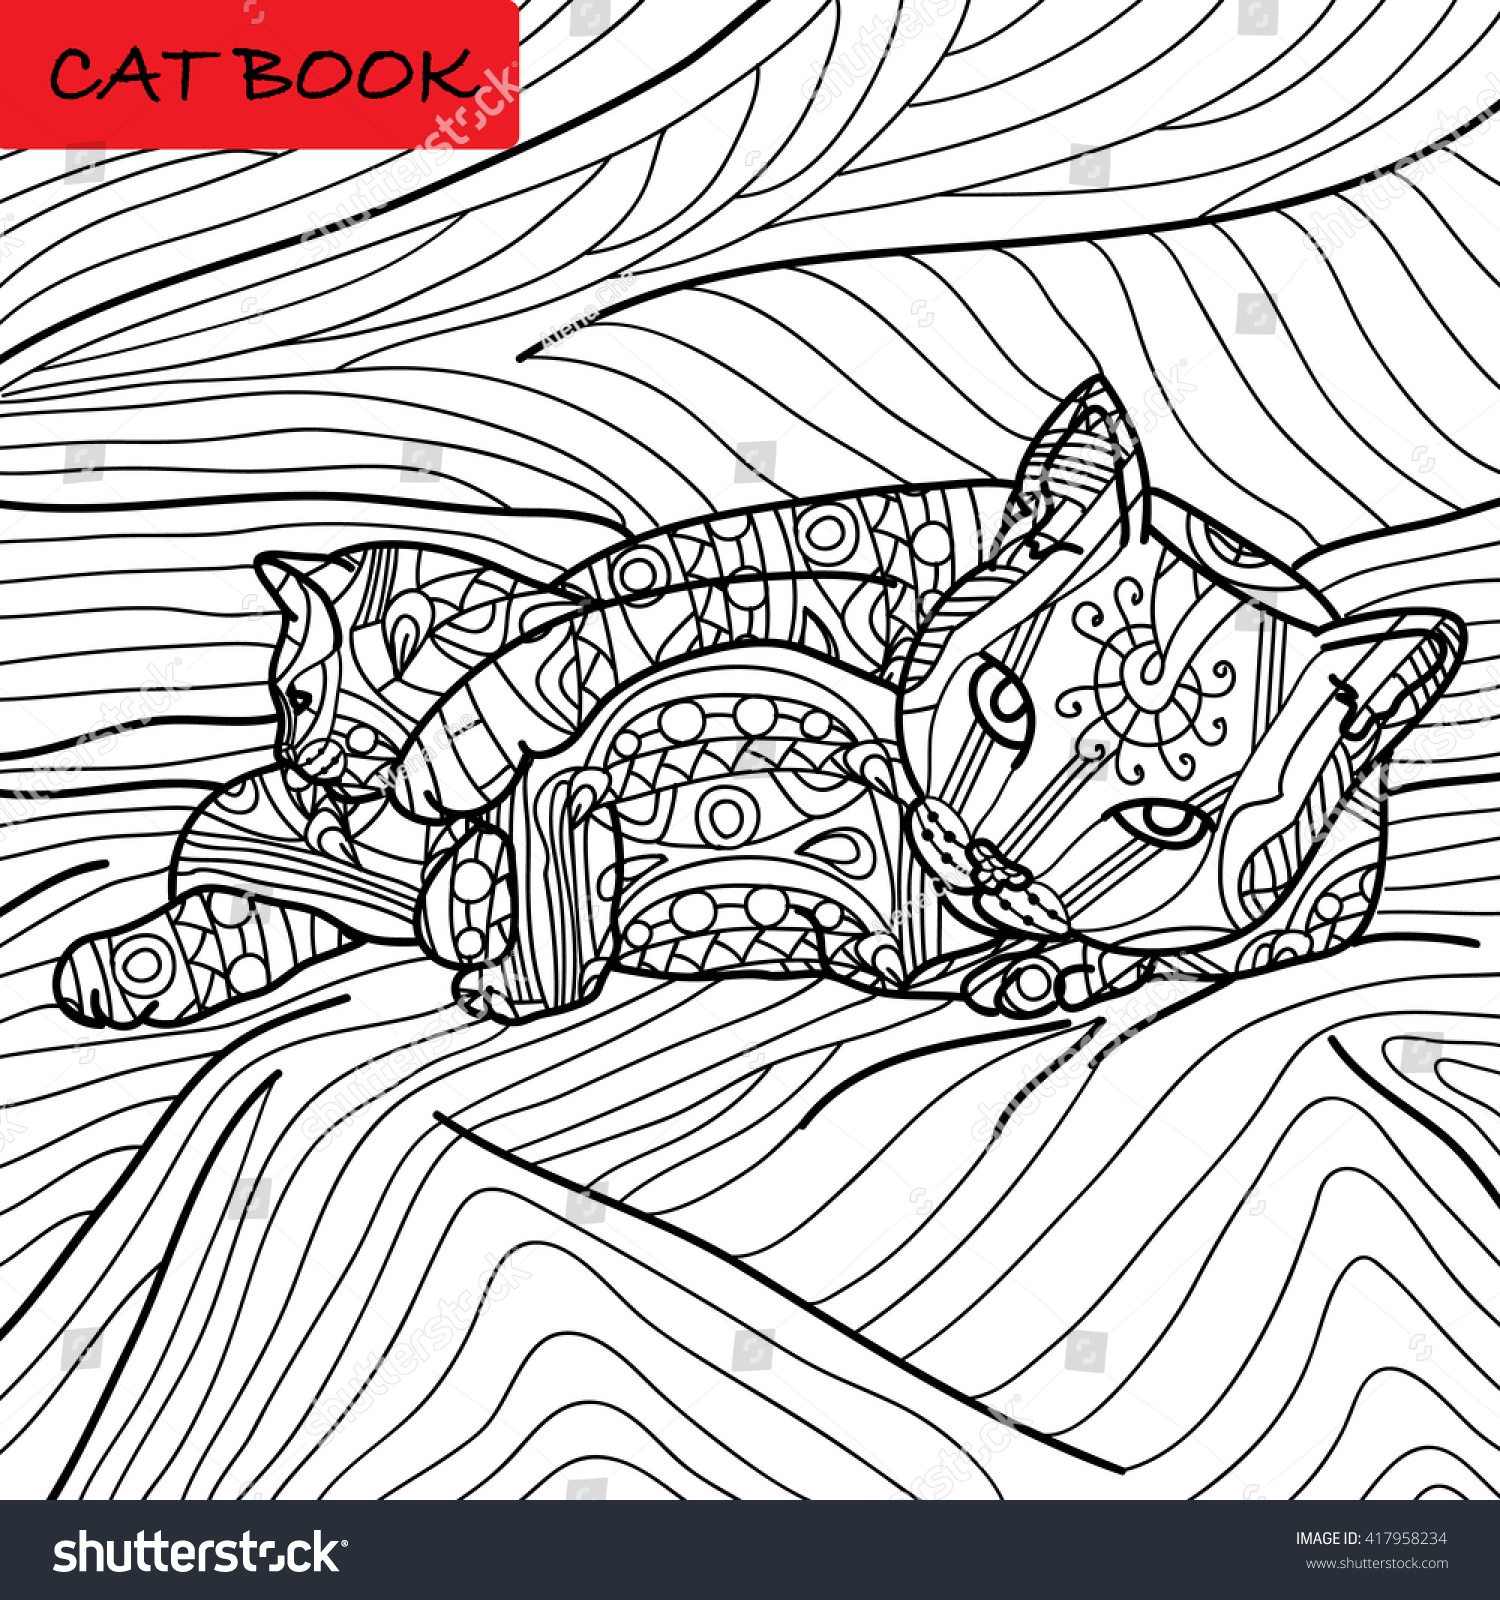 Coloring Cat Page Adults Cat Mom Stock Vector 417958234